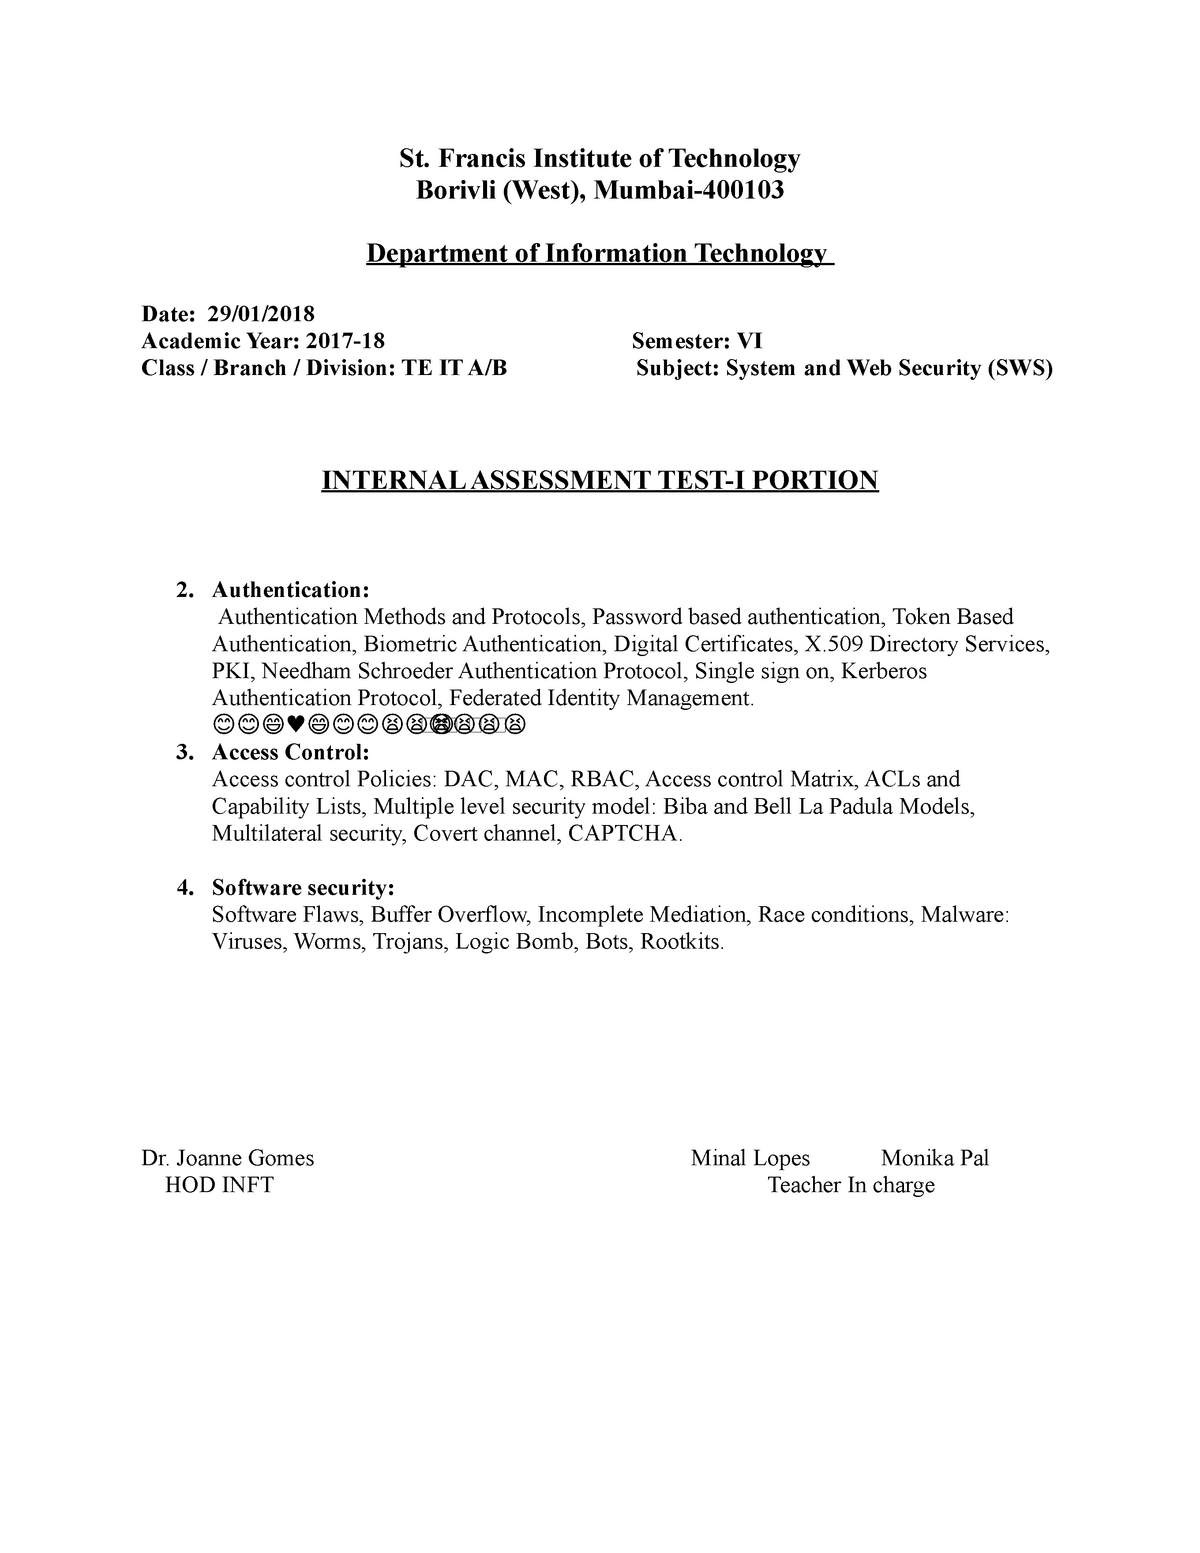 IAT1-Portion-SWS - syllabus for internal assesment test